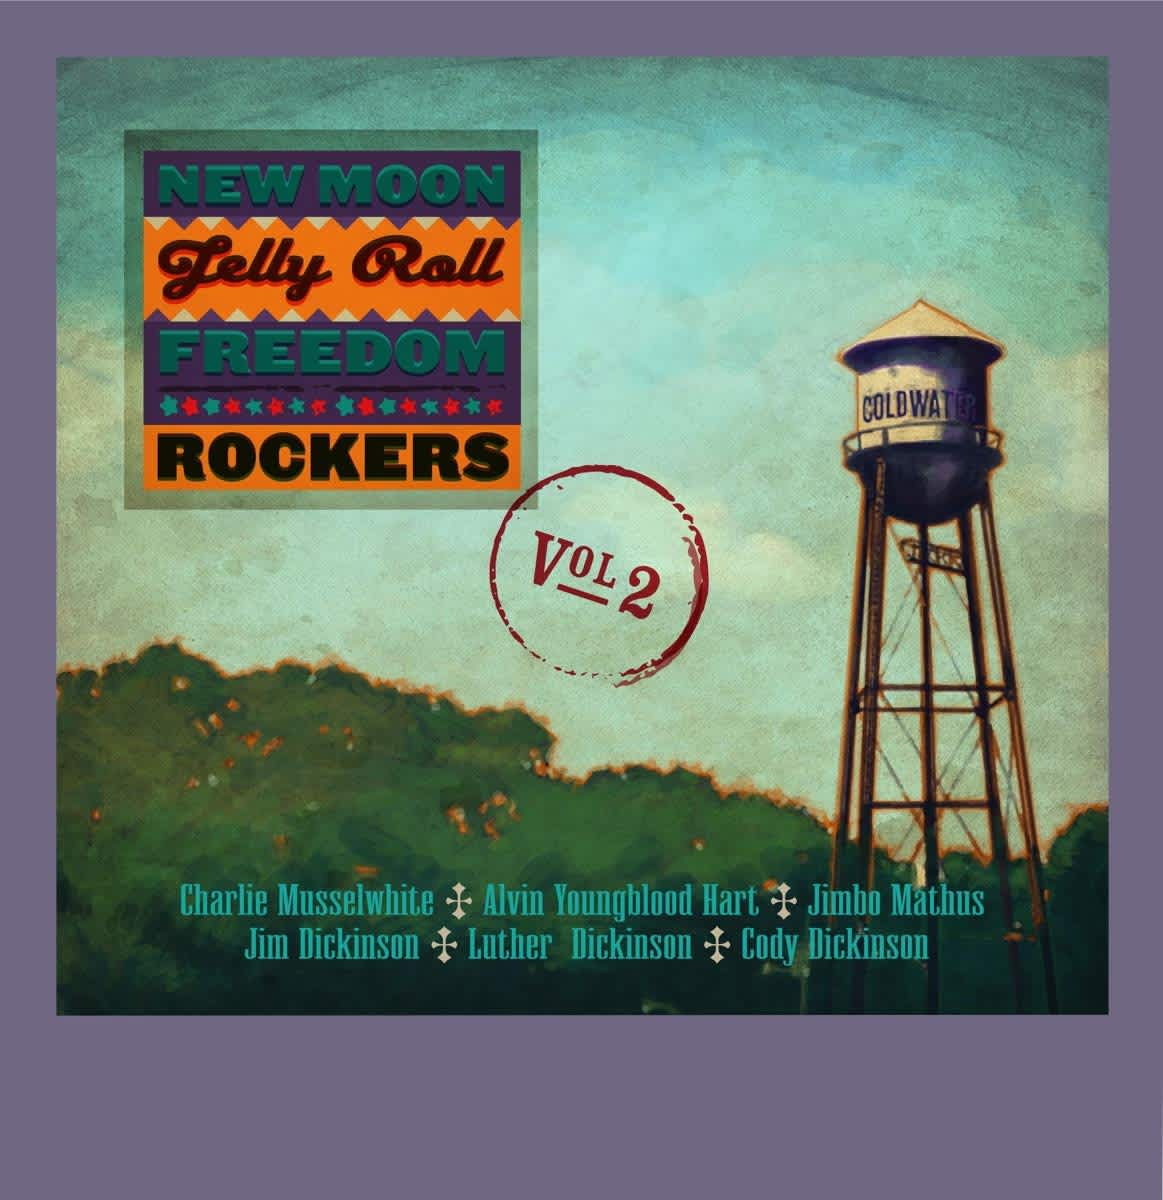 New Moon Jelly Roll Freedom Rockers Vol.2, feat. Charlie Musselwhite, Alvin Youngblood Hart, Luther & Cody & Jim Dickinson, Jimbo Mathus